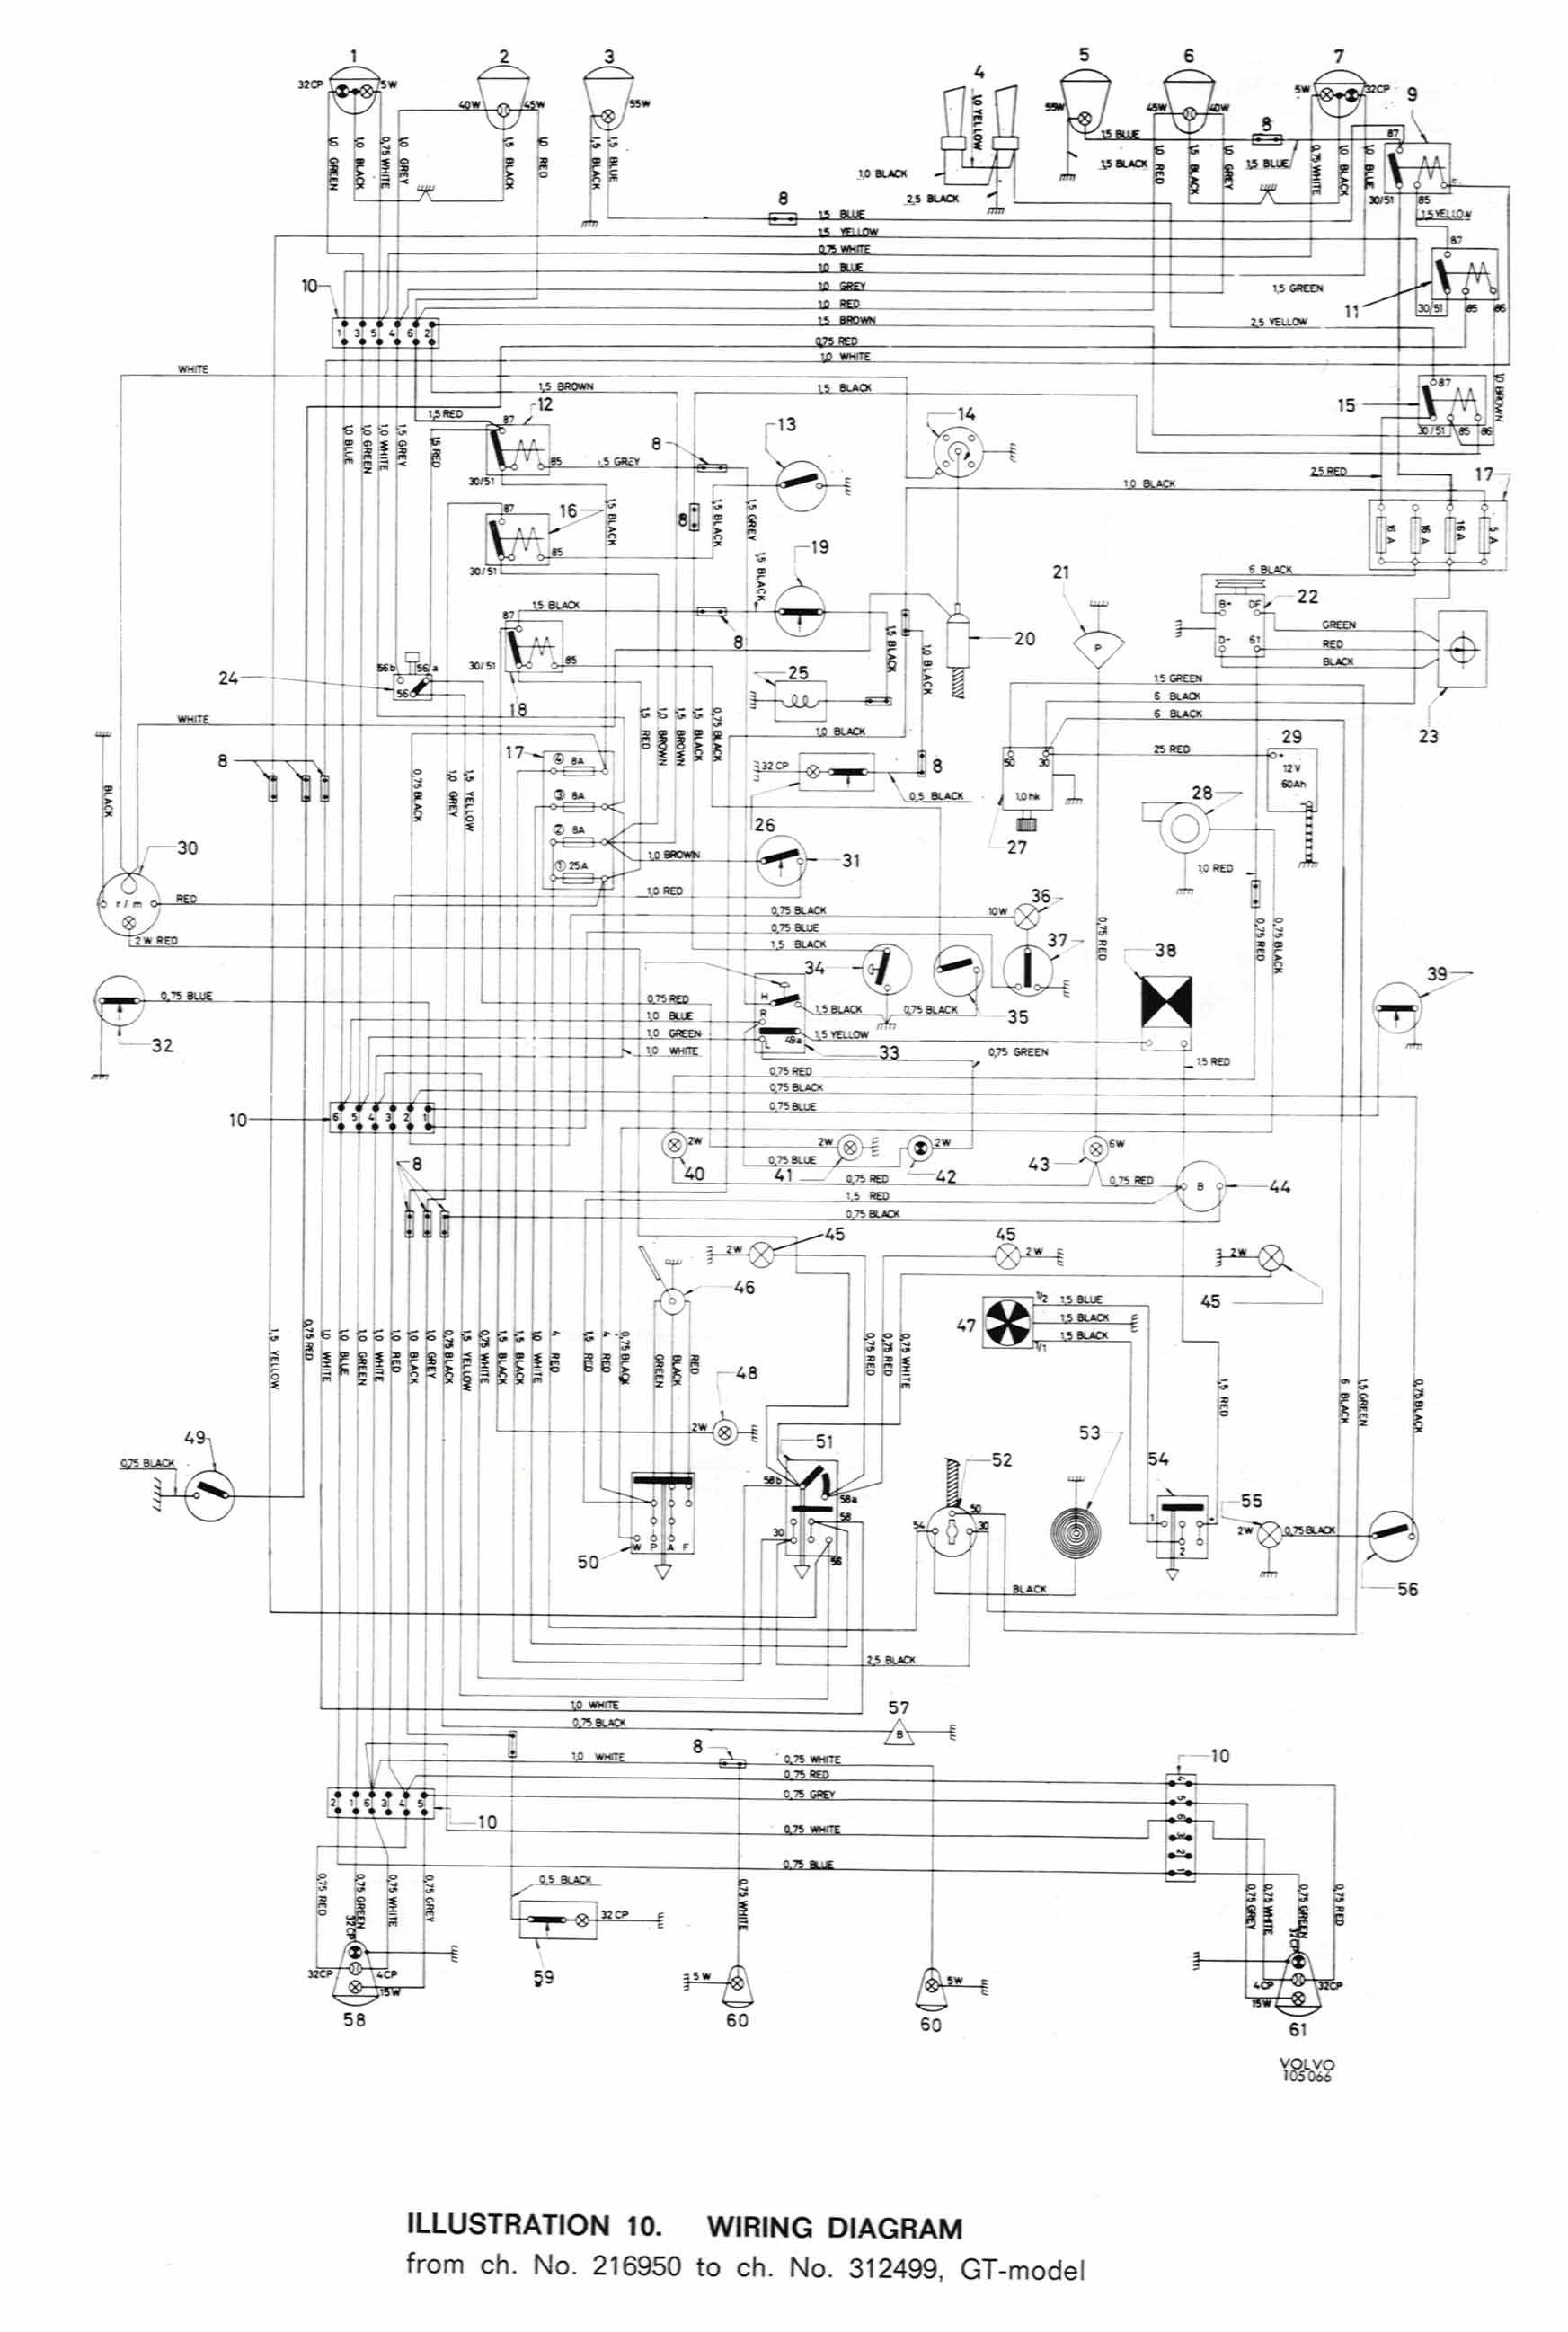 Wiring Diagram Volvo Amazon Get Free Image About Wiring Diagram